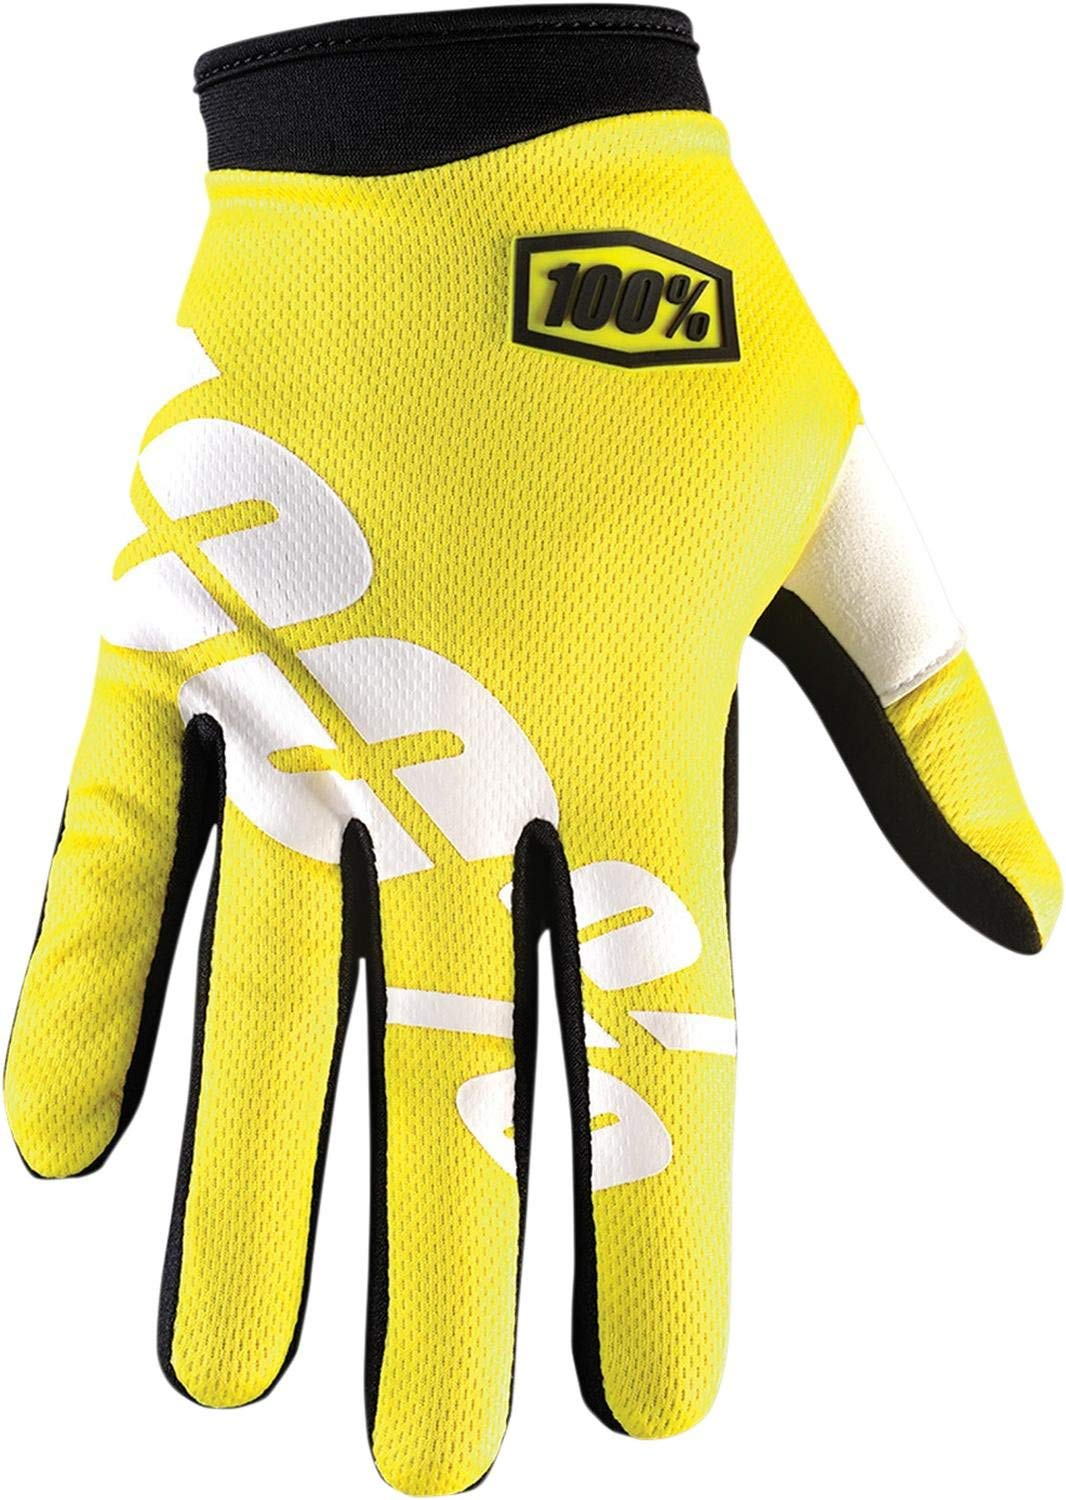 100% iTrack Yellow MX Motocross Offroad Motorcycle Riding Glove Adult X-Large